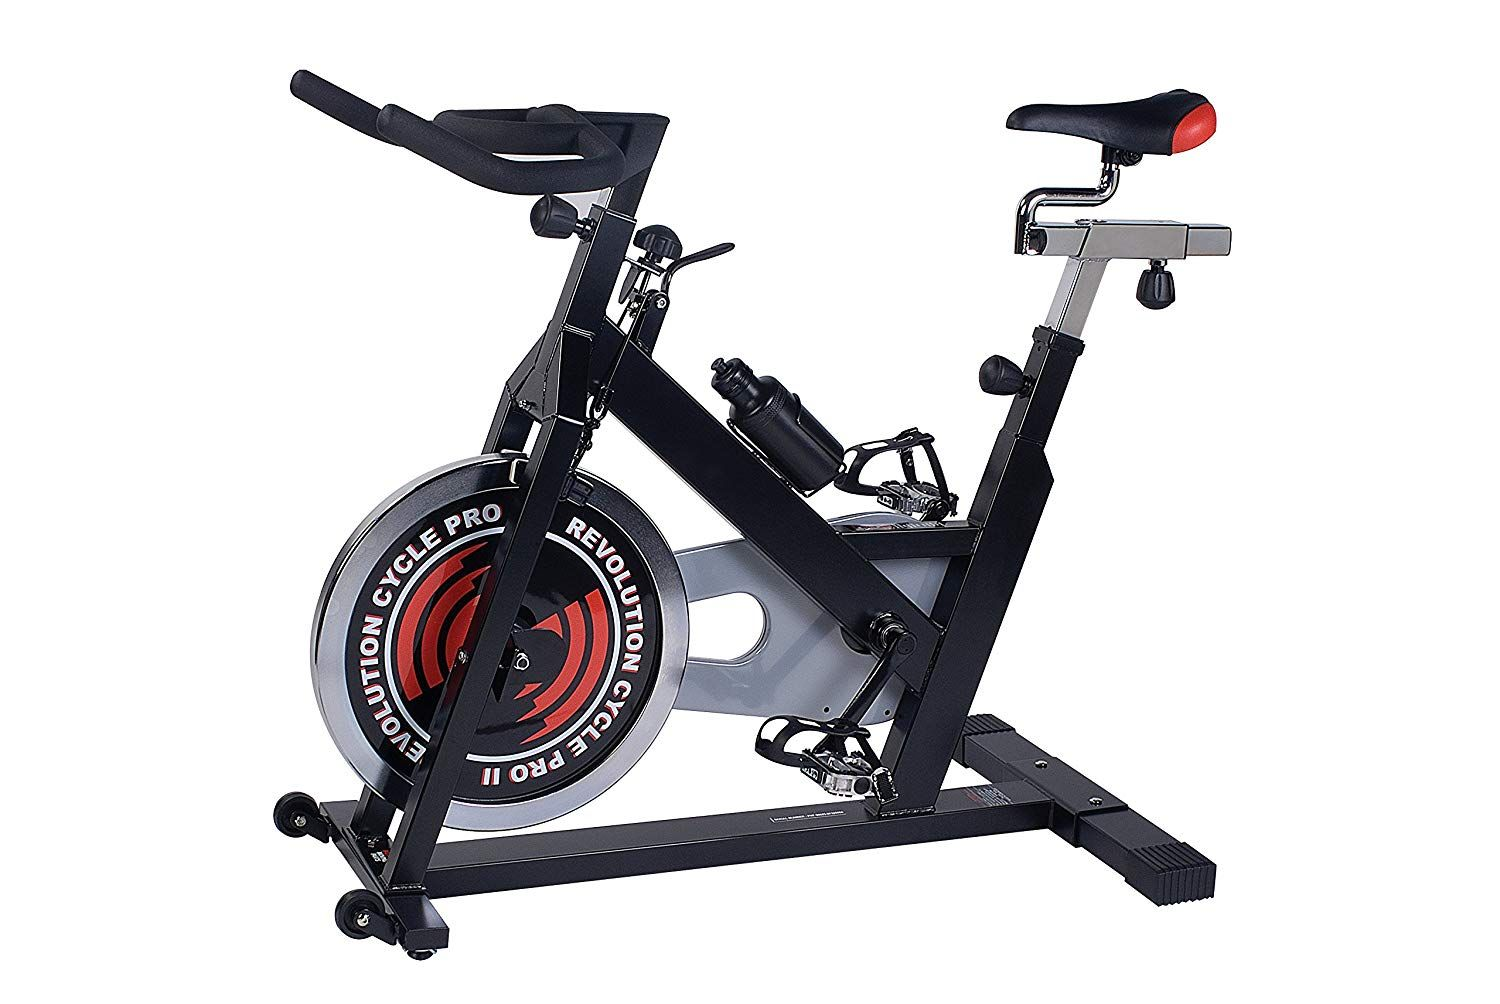 Best Spin Bike Reviews In 2020 With Images Spin Bikes Spin